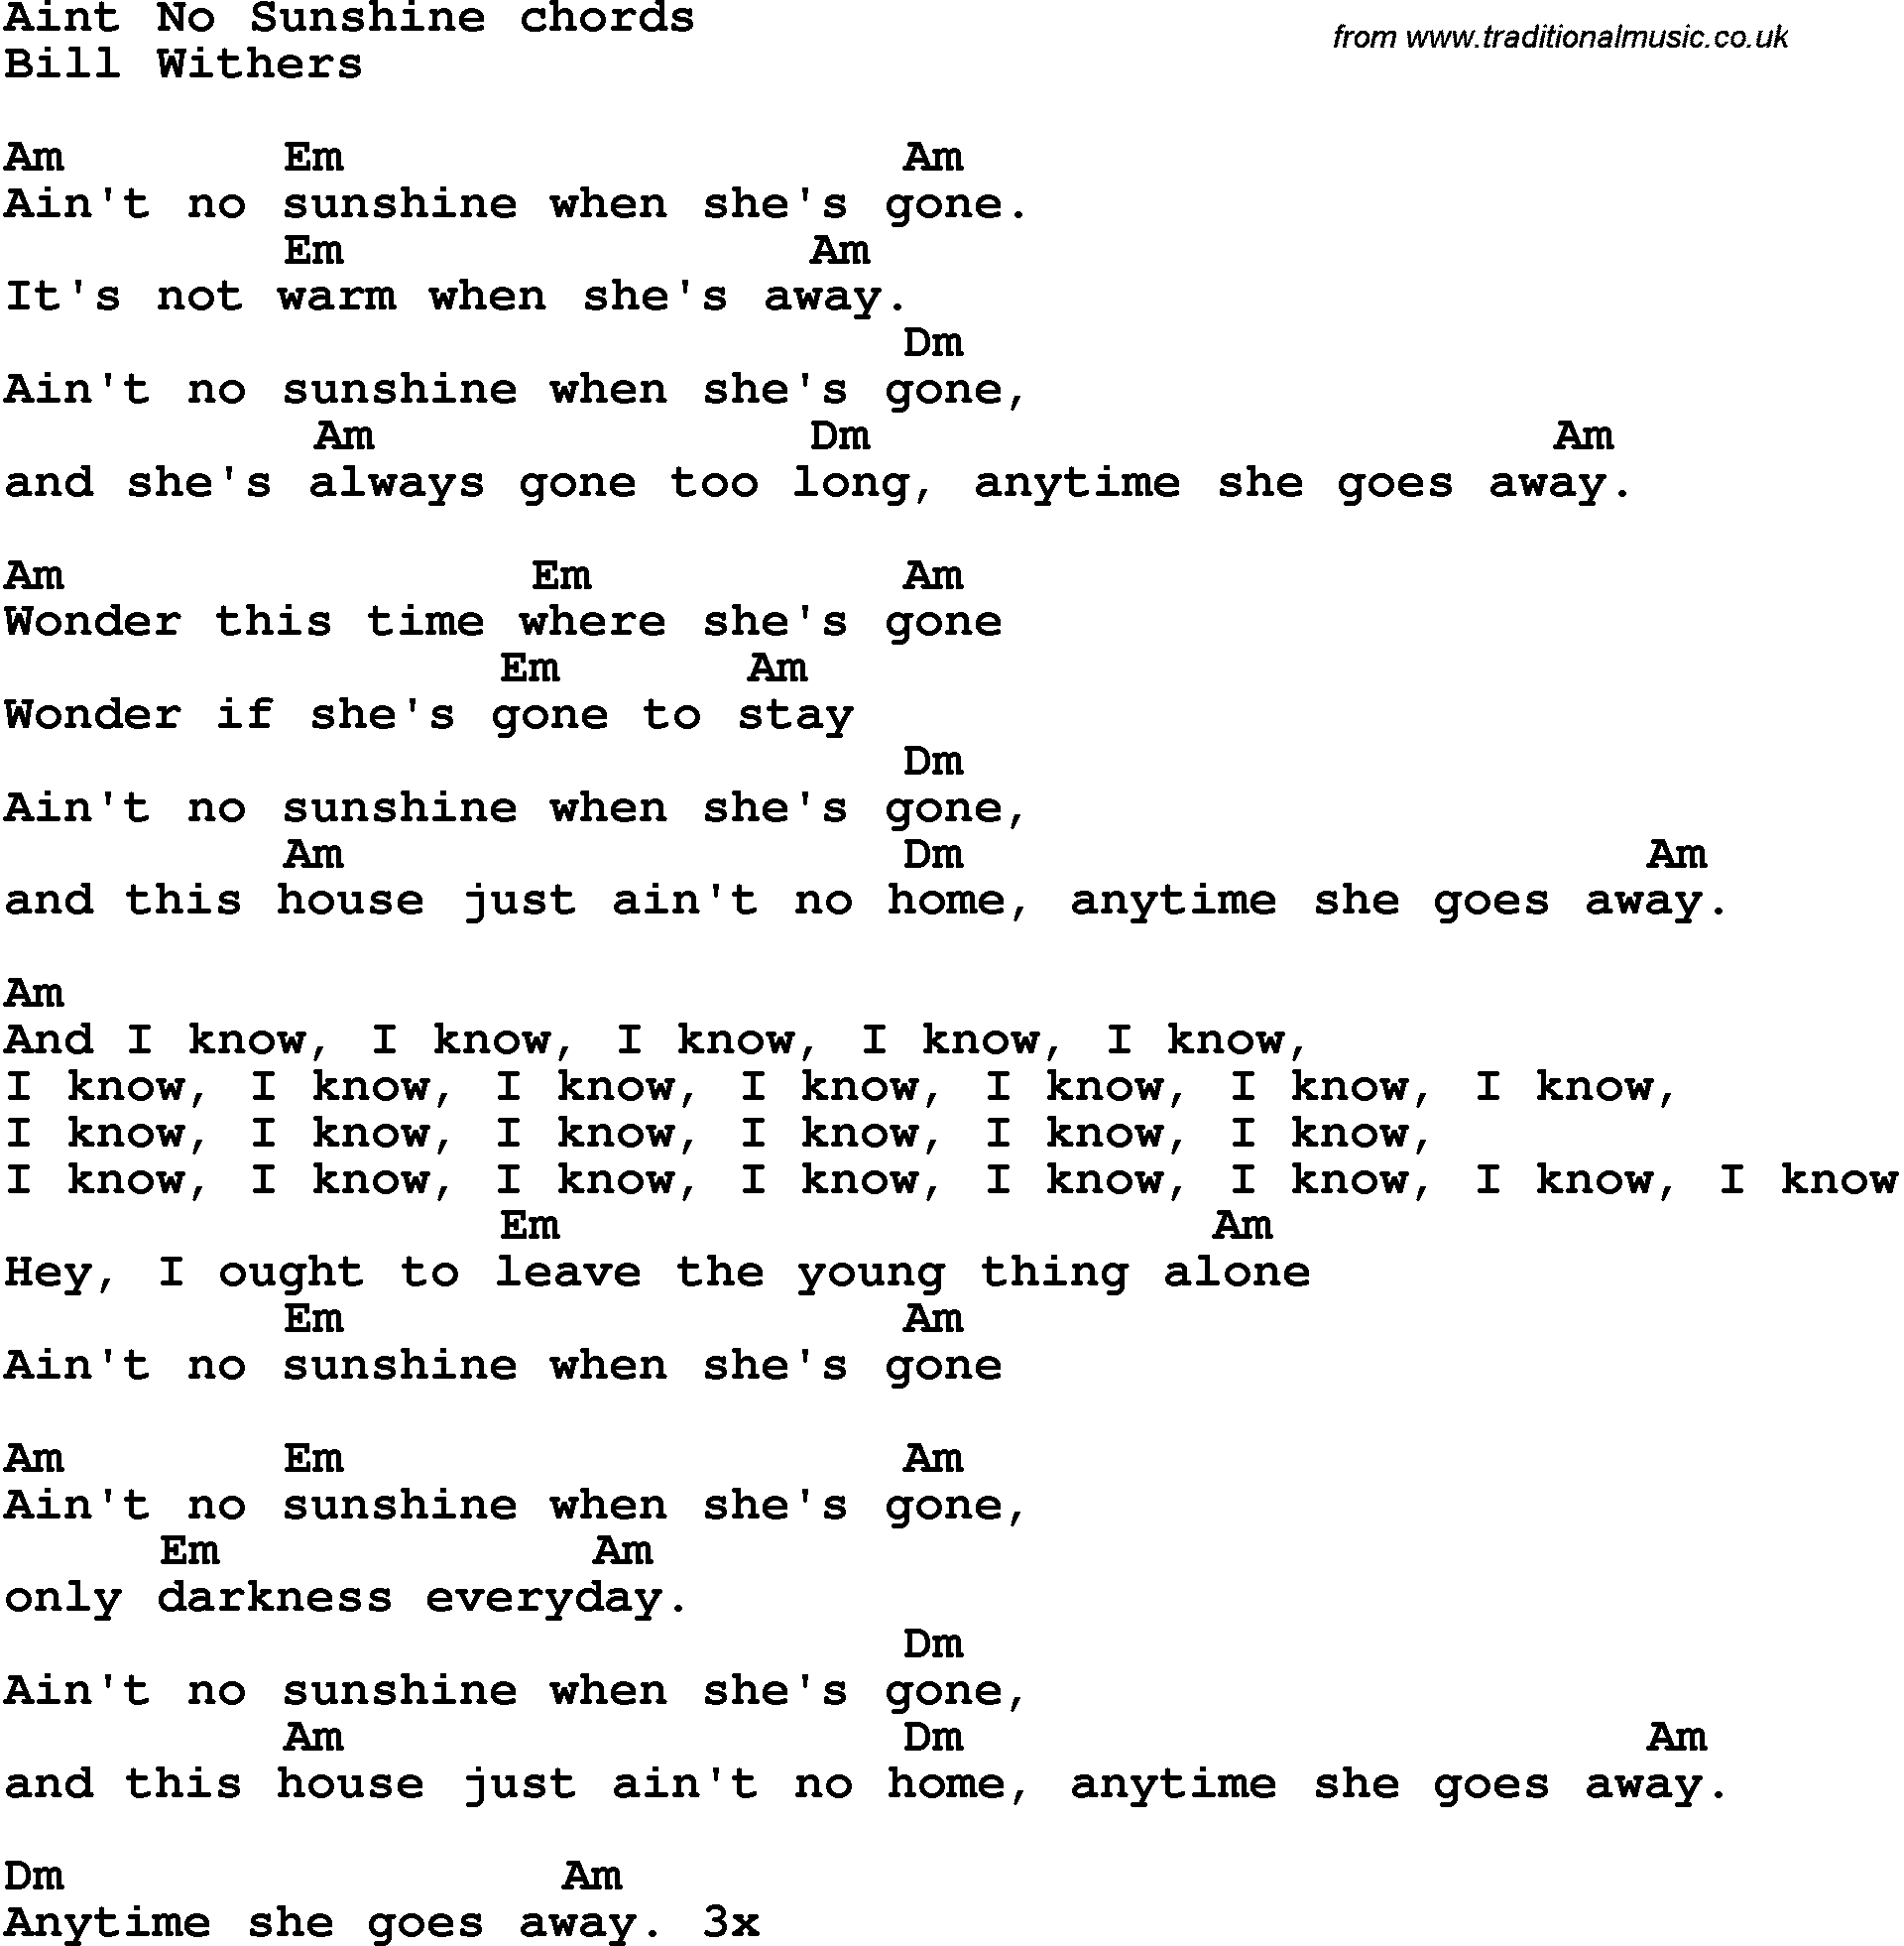 Guitar Chords And Lyrics For Beginners Irish Songs: Song Lyrics With Guitar Chords For Ain't No Sunshine